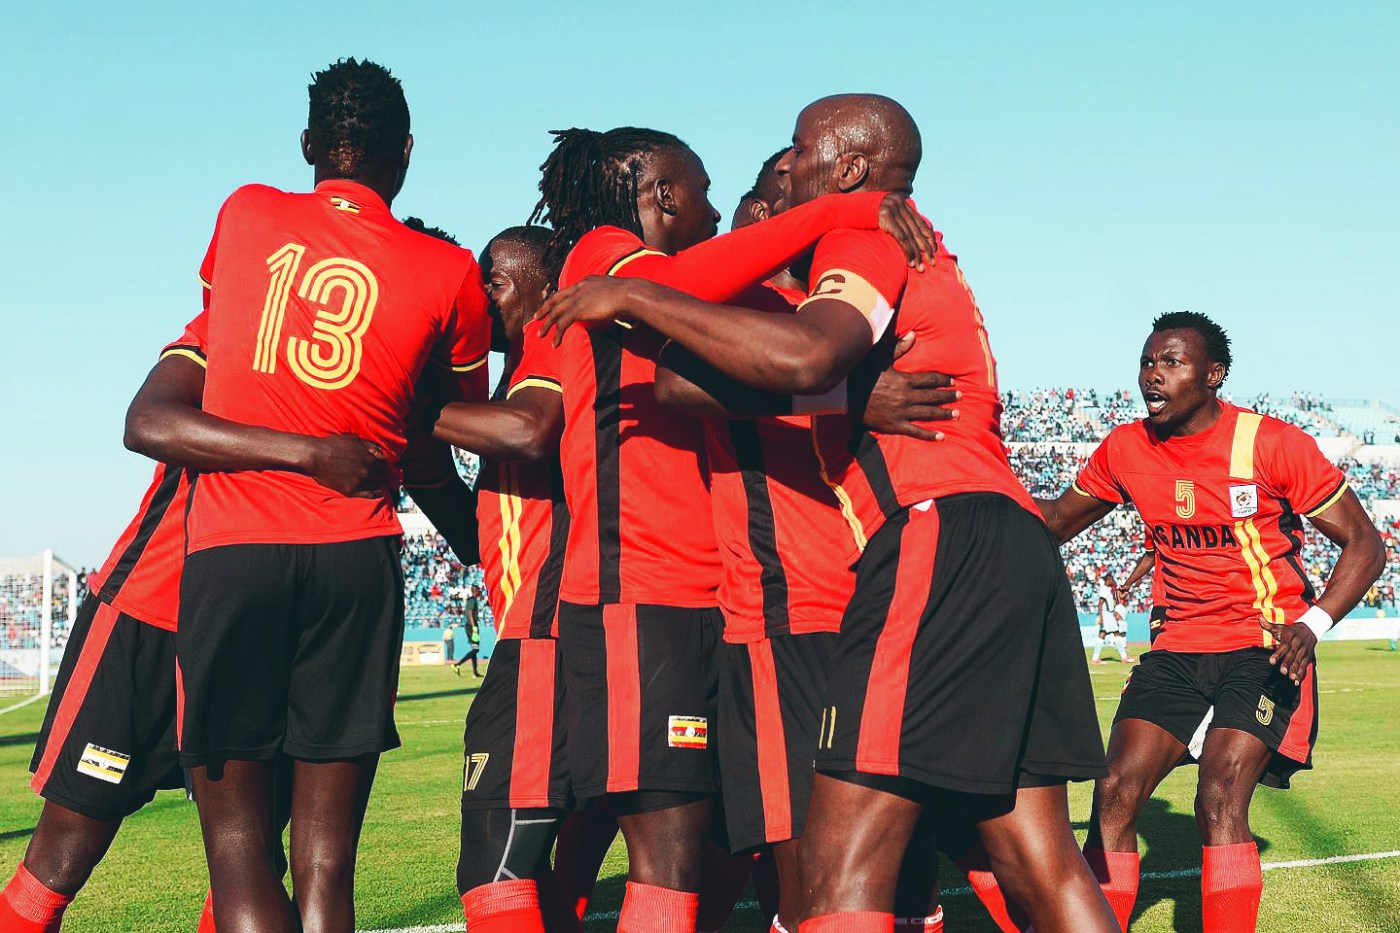 2018 FIFA World Cup qualifier: Uganda coach names 35-man squad to face Ghana next month